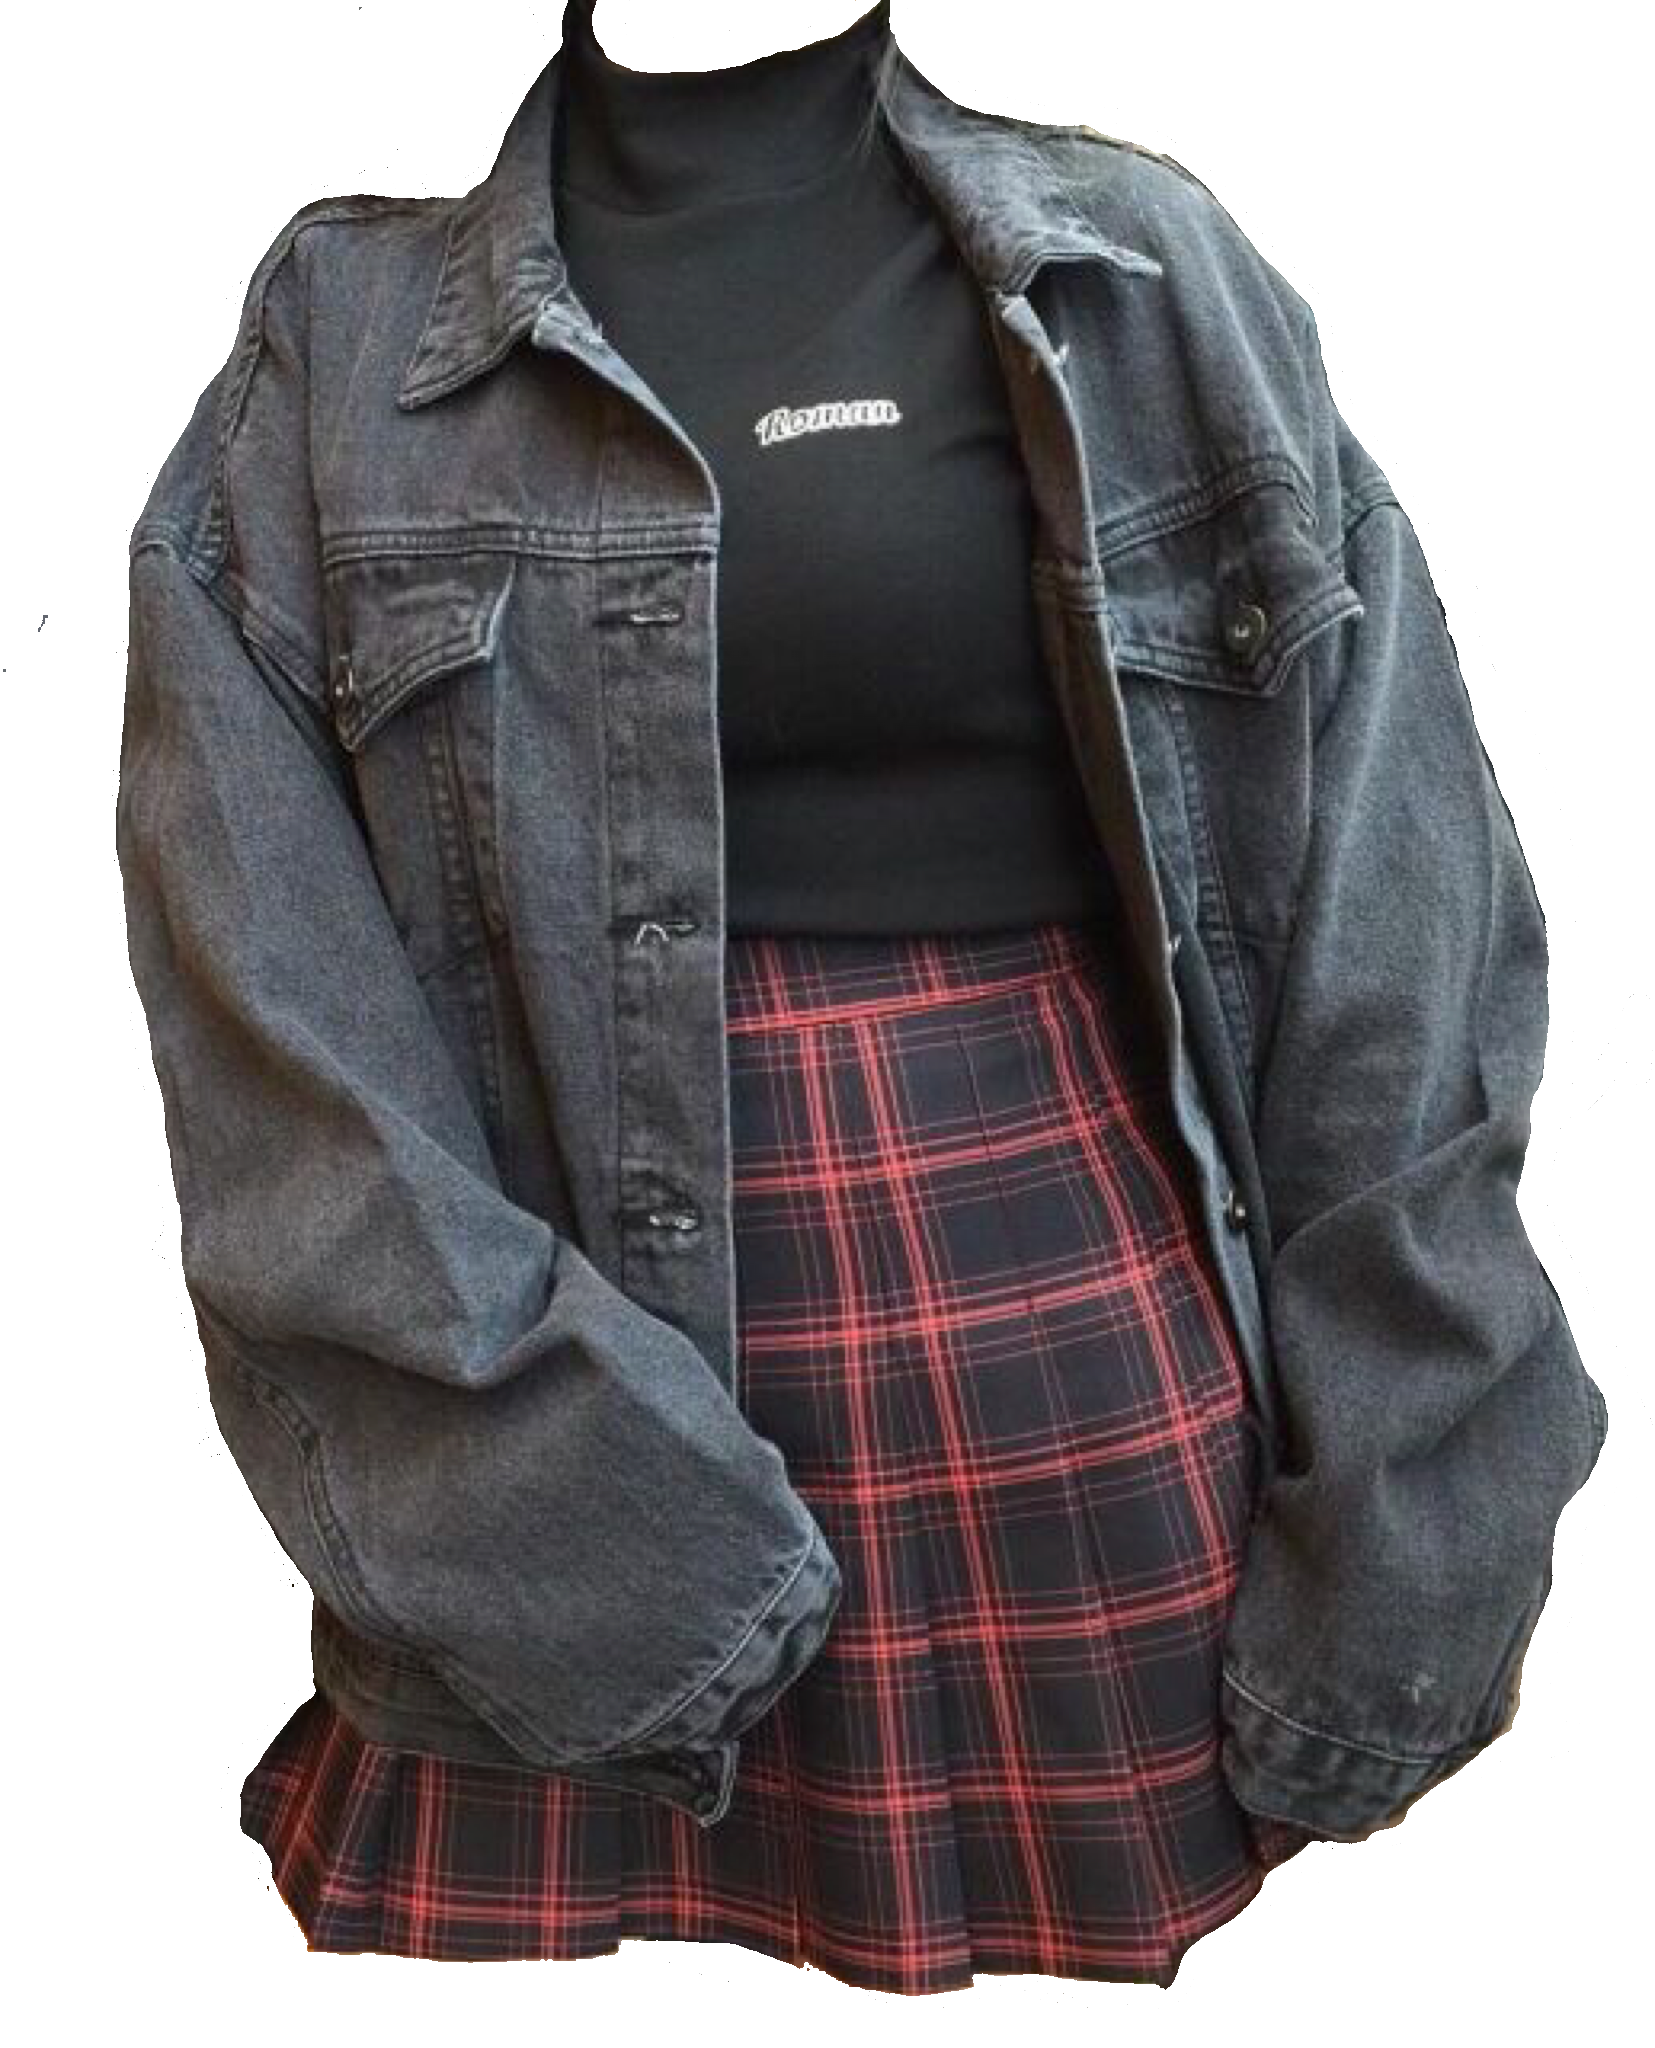 Polyvore Grunge Black Moodboard Filler Outfit Clothing Aesthetic Clothes Outfits With Leggings Soft Grunge Outfits